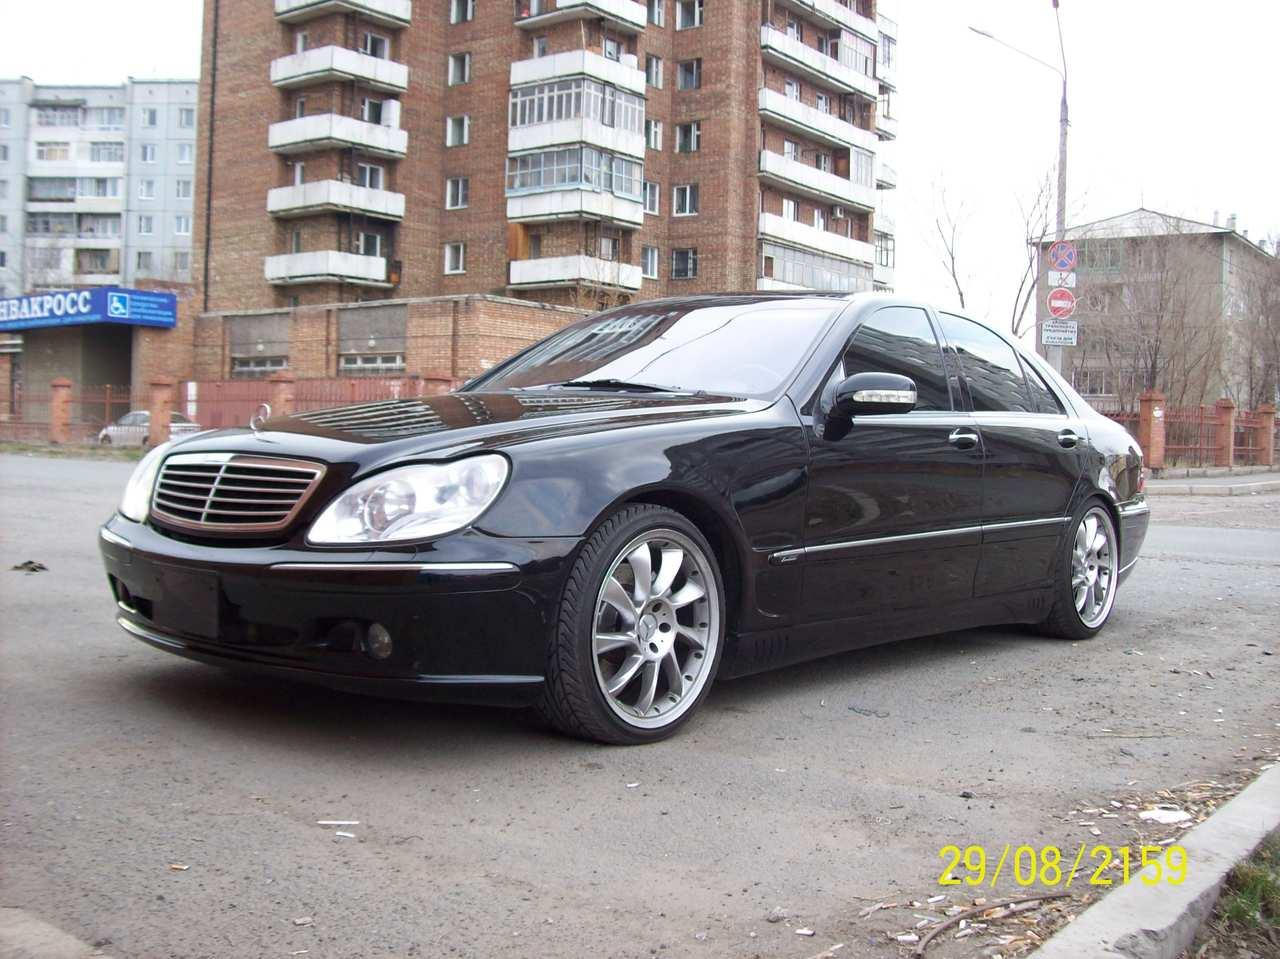 2003 mercedes benz s class information and photos zombiedrive. Black Bedroom Furniture Sets. Home Design Ideas